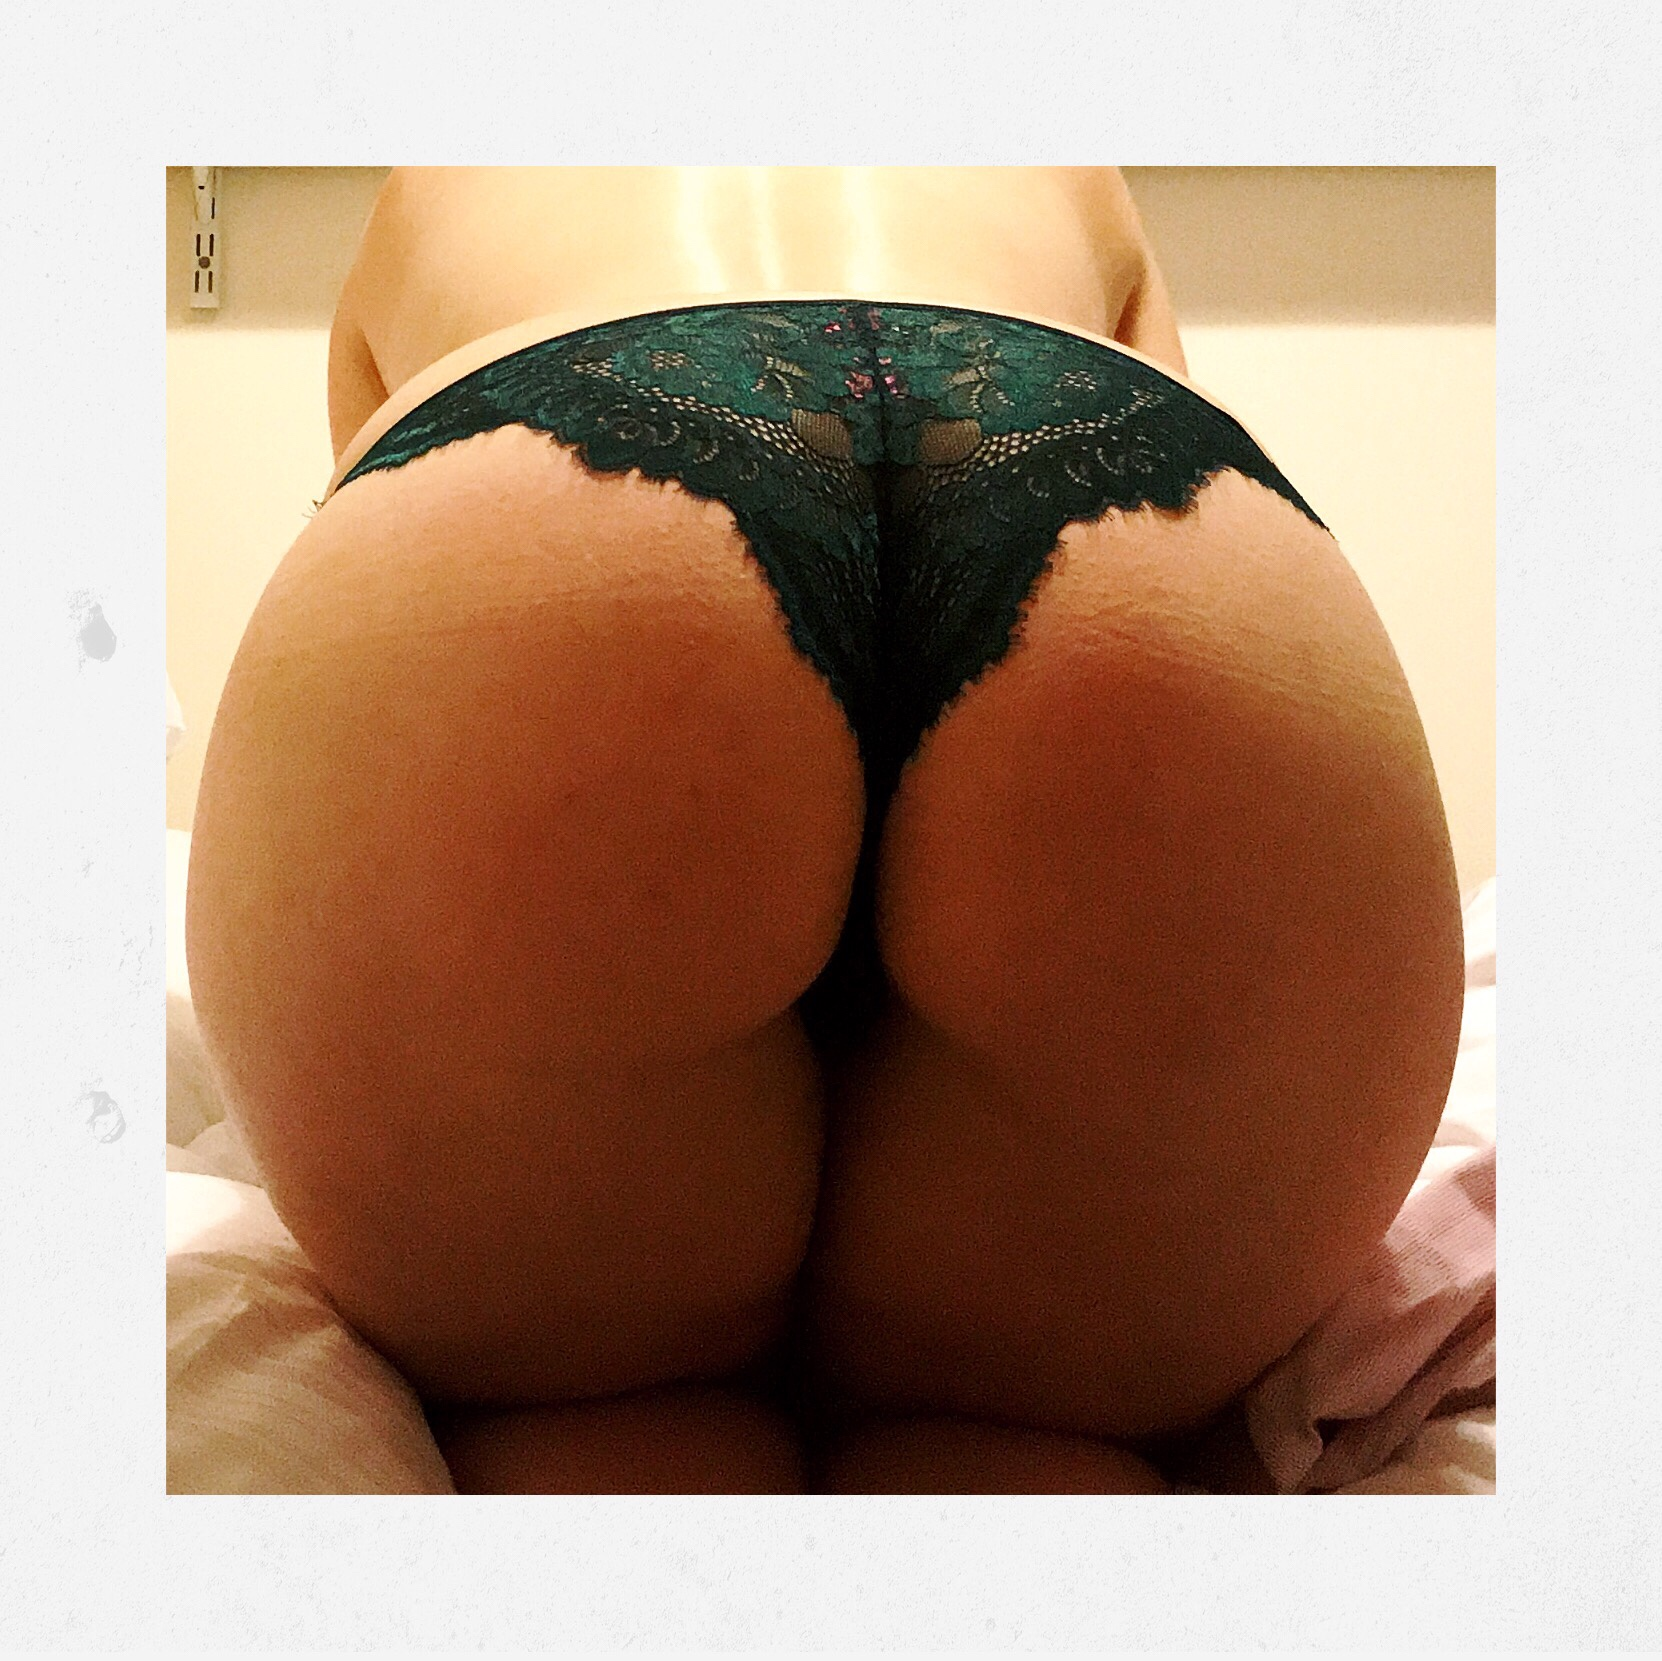 A photo of my arse bent over a bed, wearing green lacy pants